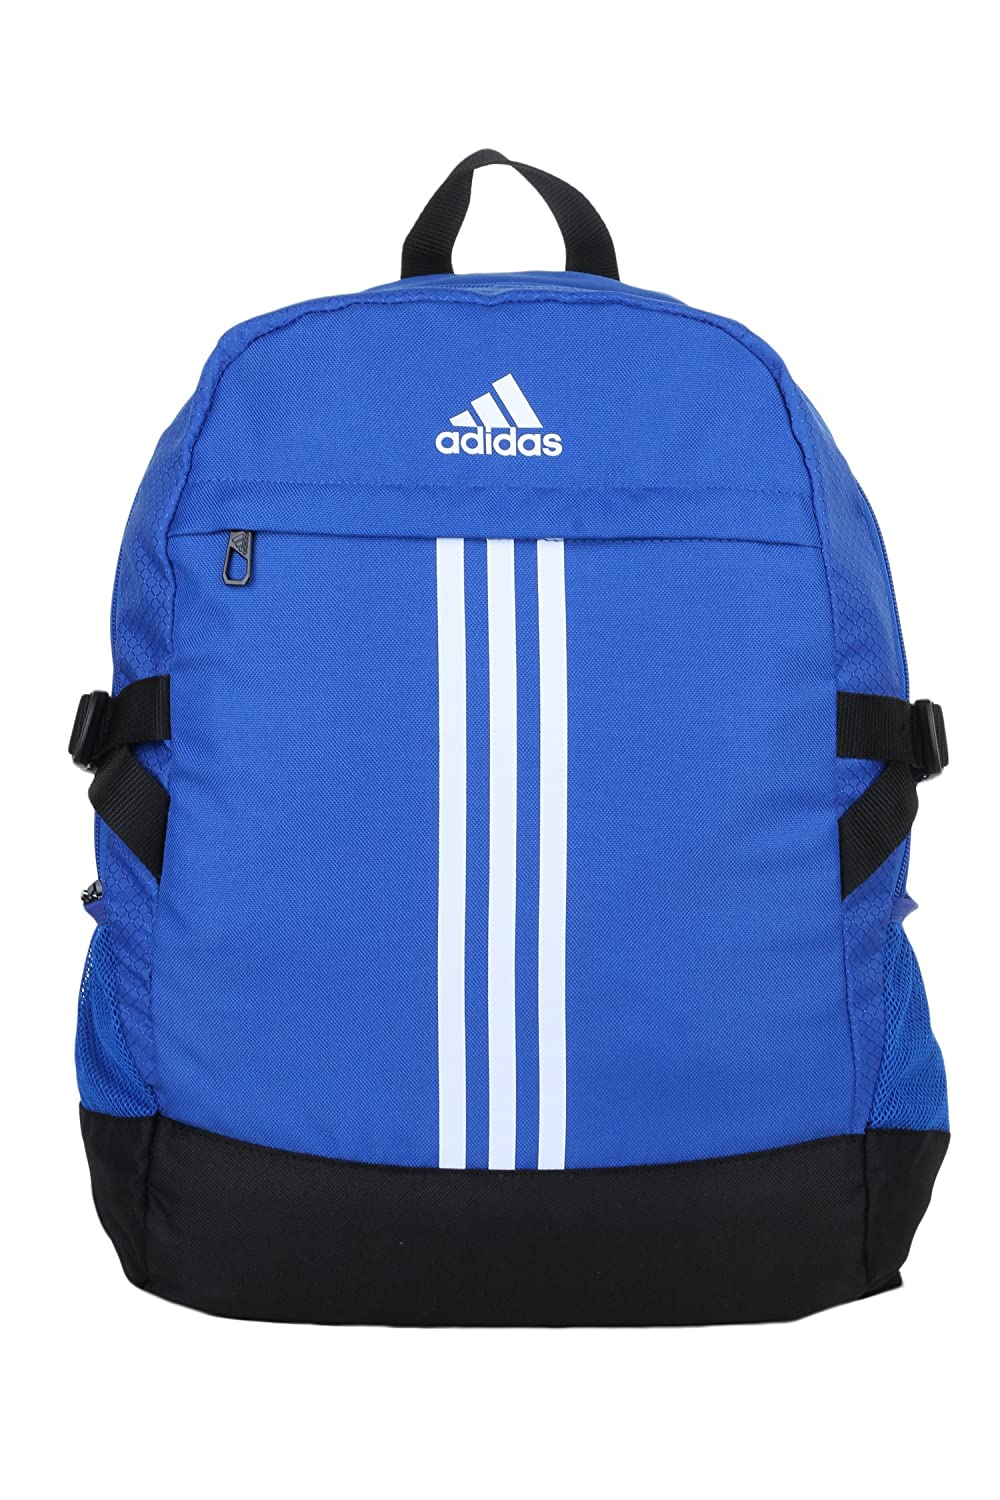 Adidas Bags Price List In India   ReGreen Springfield eba72f09f0